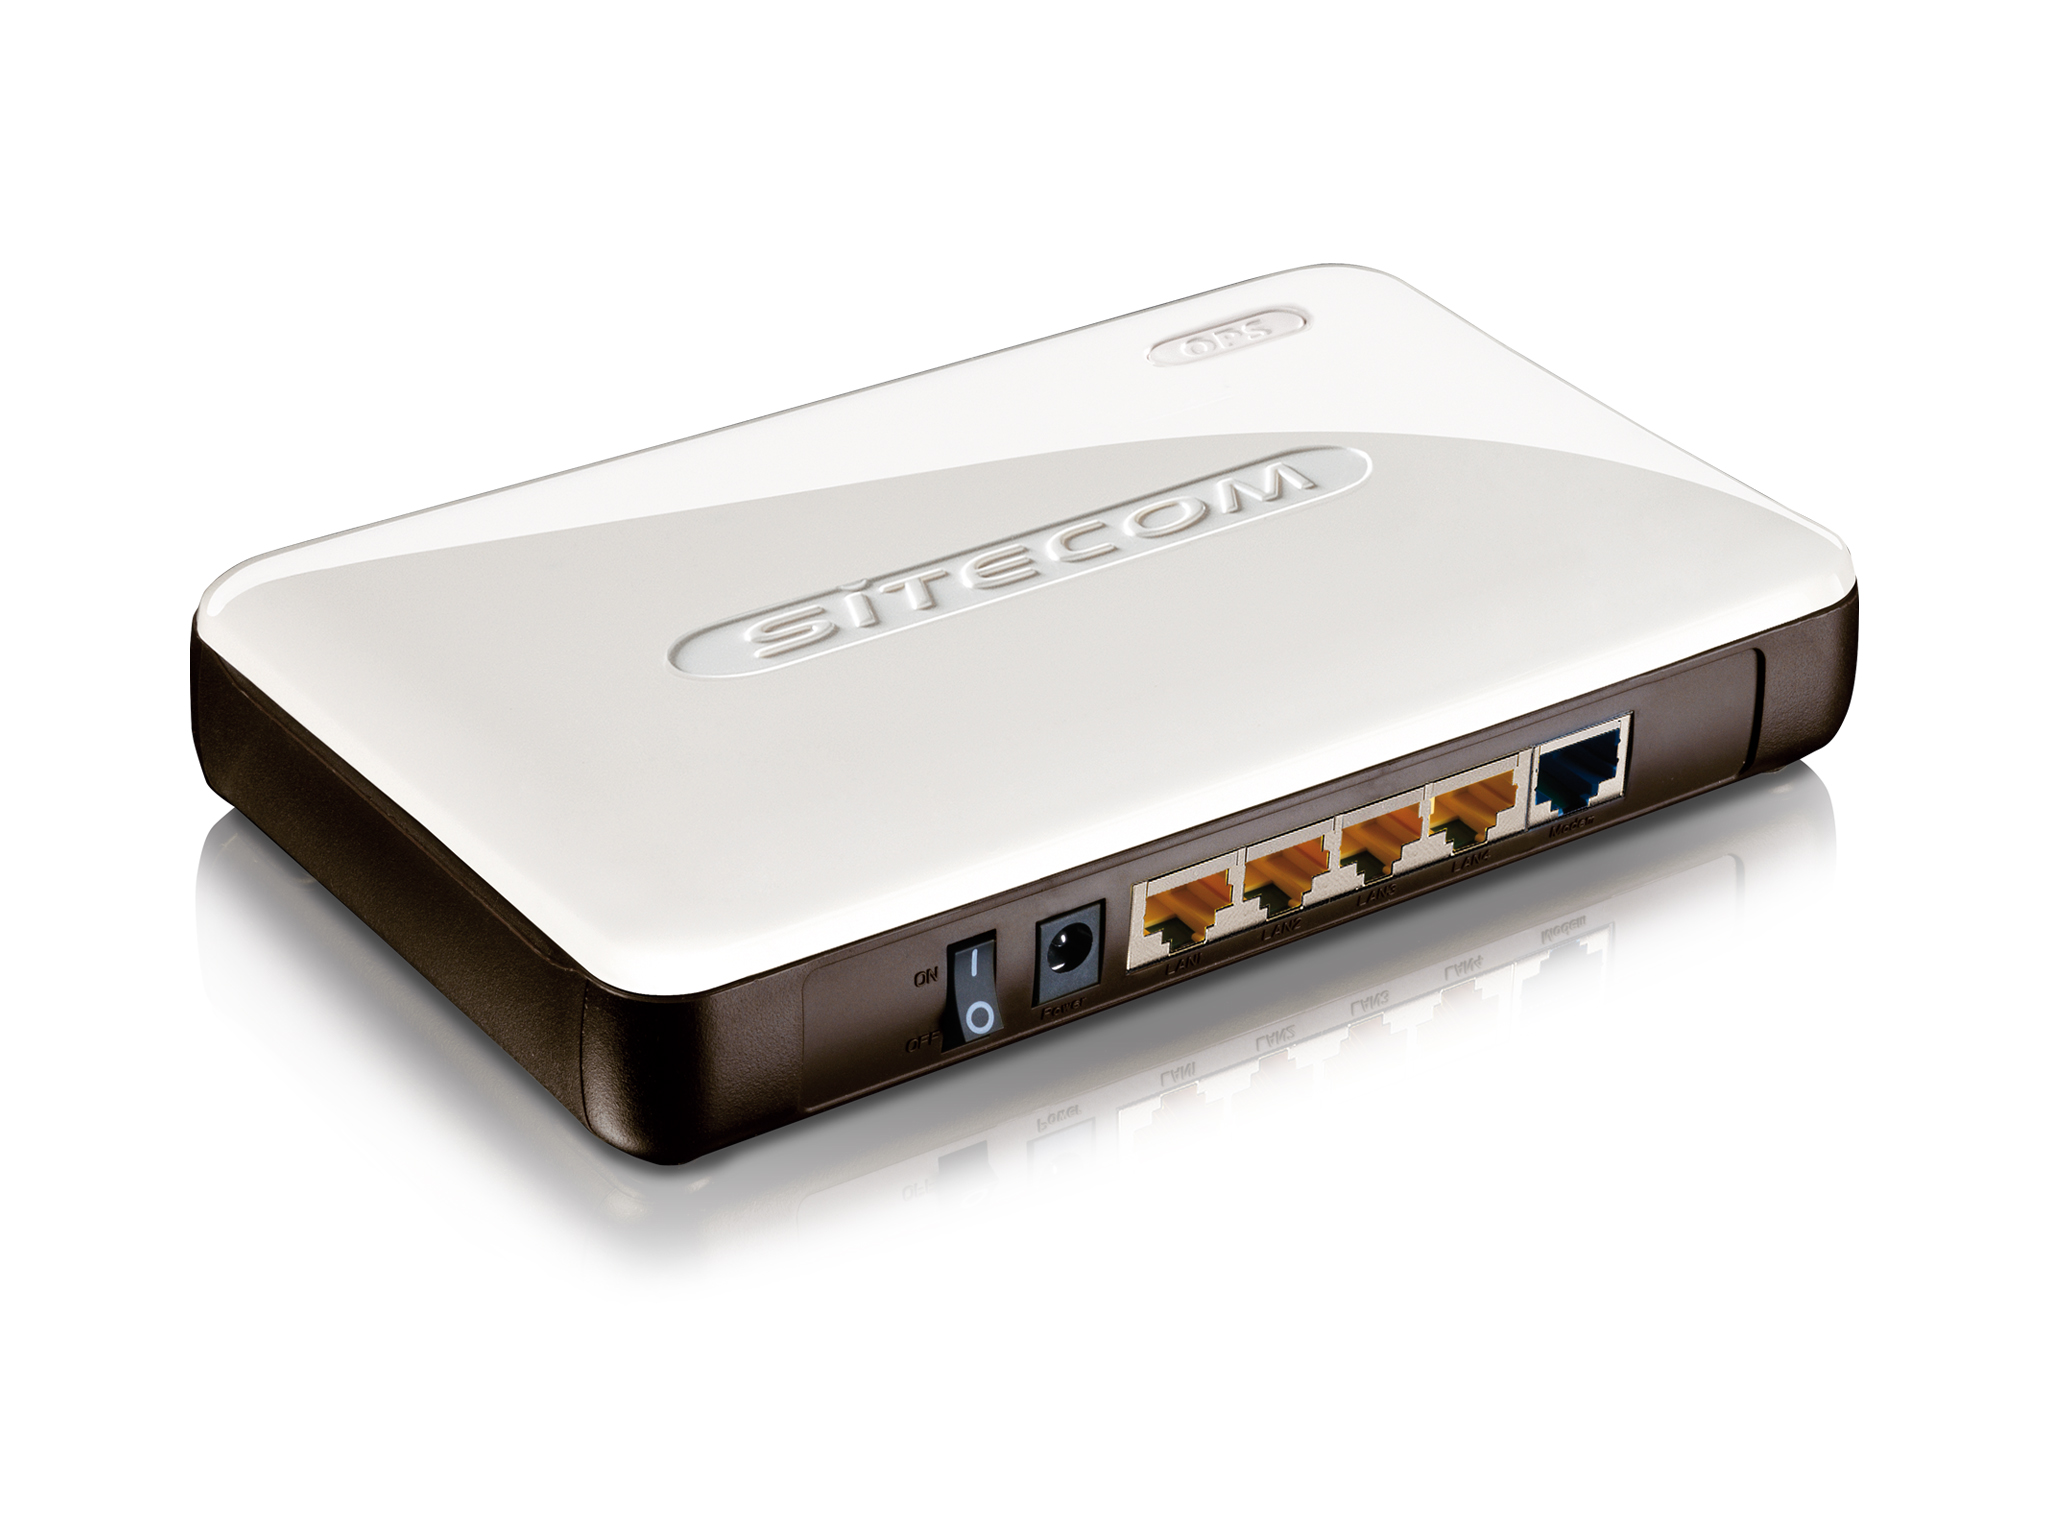 Sitecom wireless gigabit router 300N con Sitecom Cloud ...